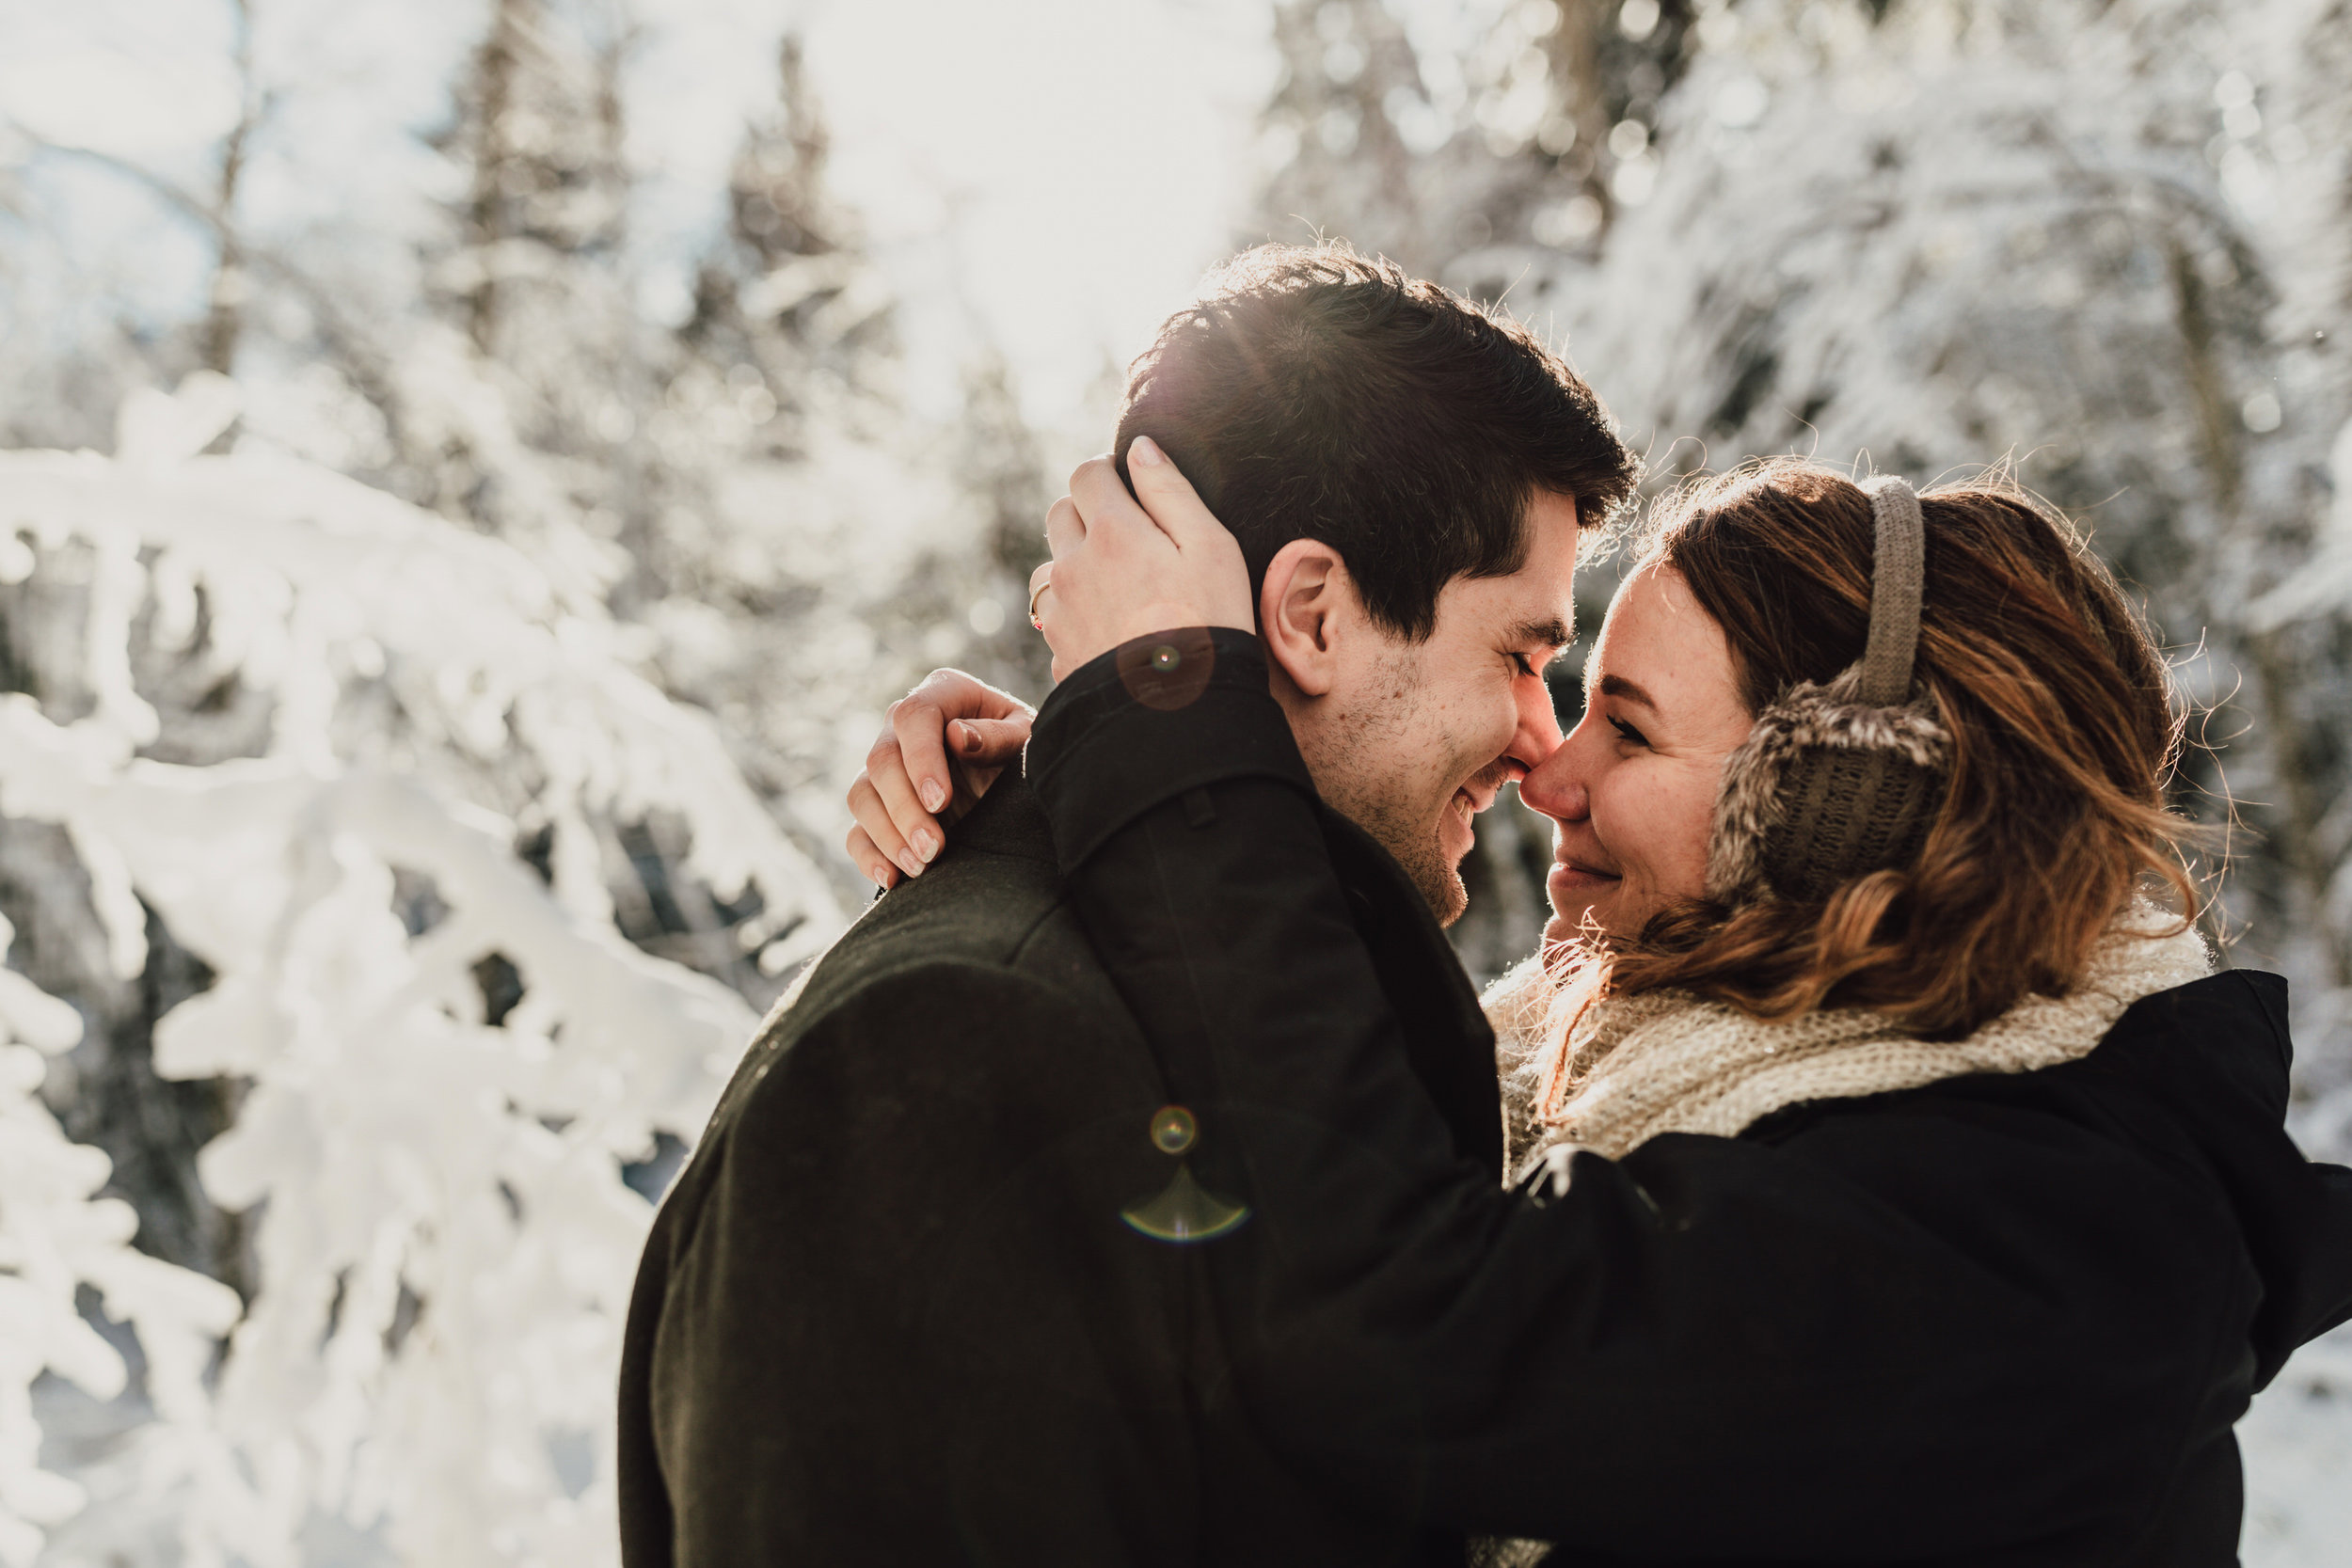 Snowy Engagement Photos - Gibsons Engagement Photos - Sunshine Coast Engagement Photos - Vancouver Wedding Photographer and Videographer - Jennifer Picard Photography102.JPG